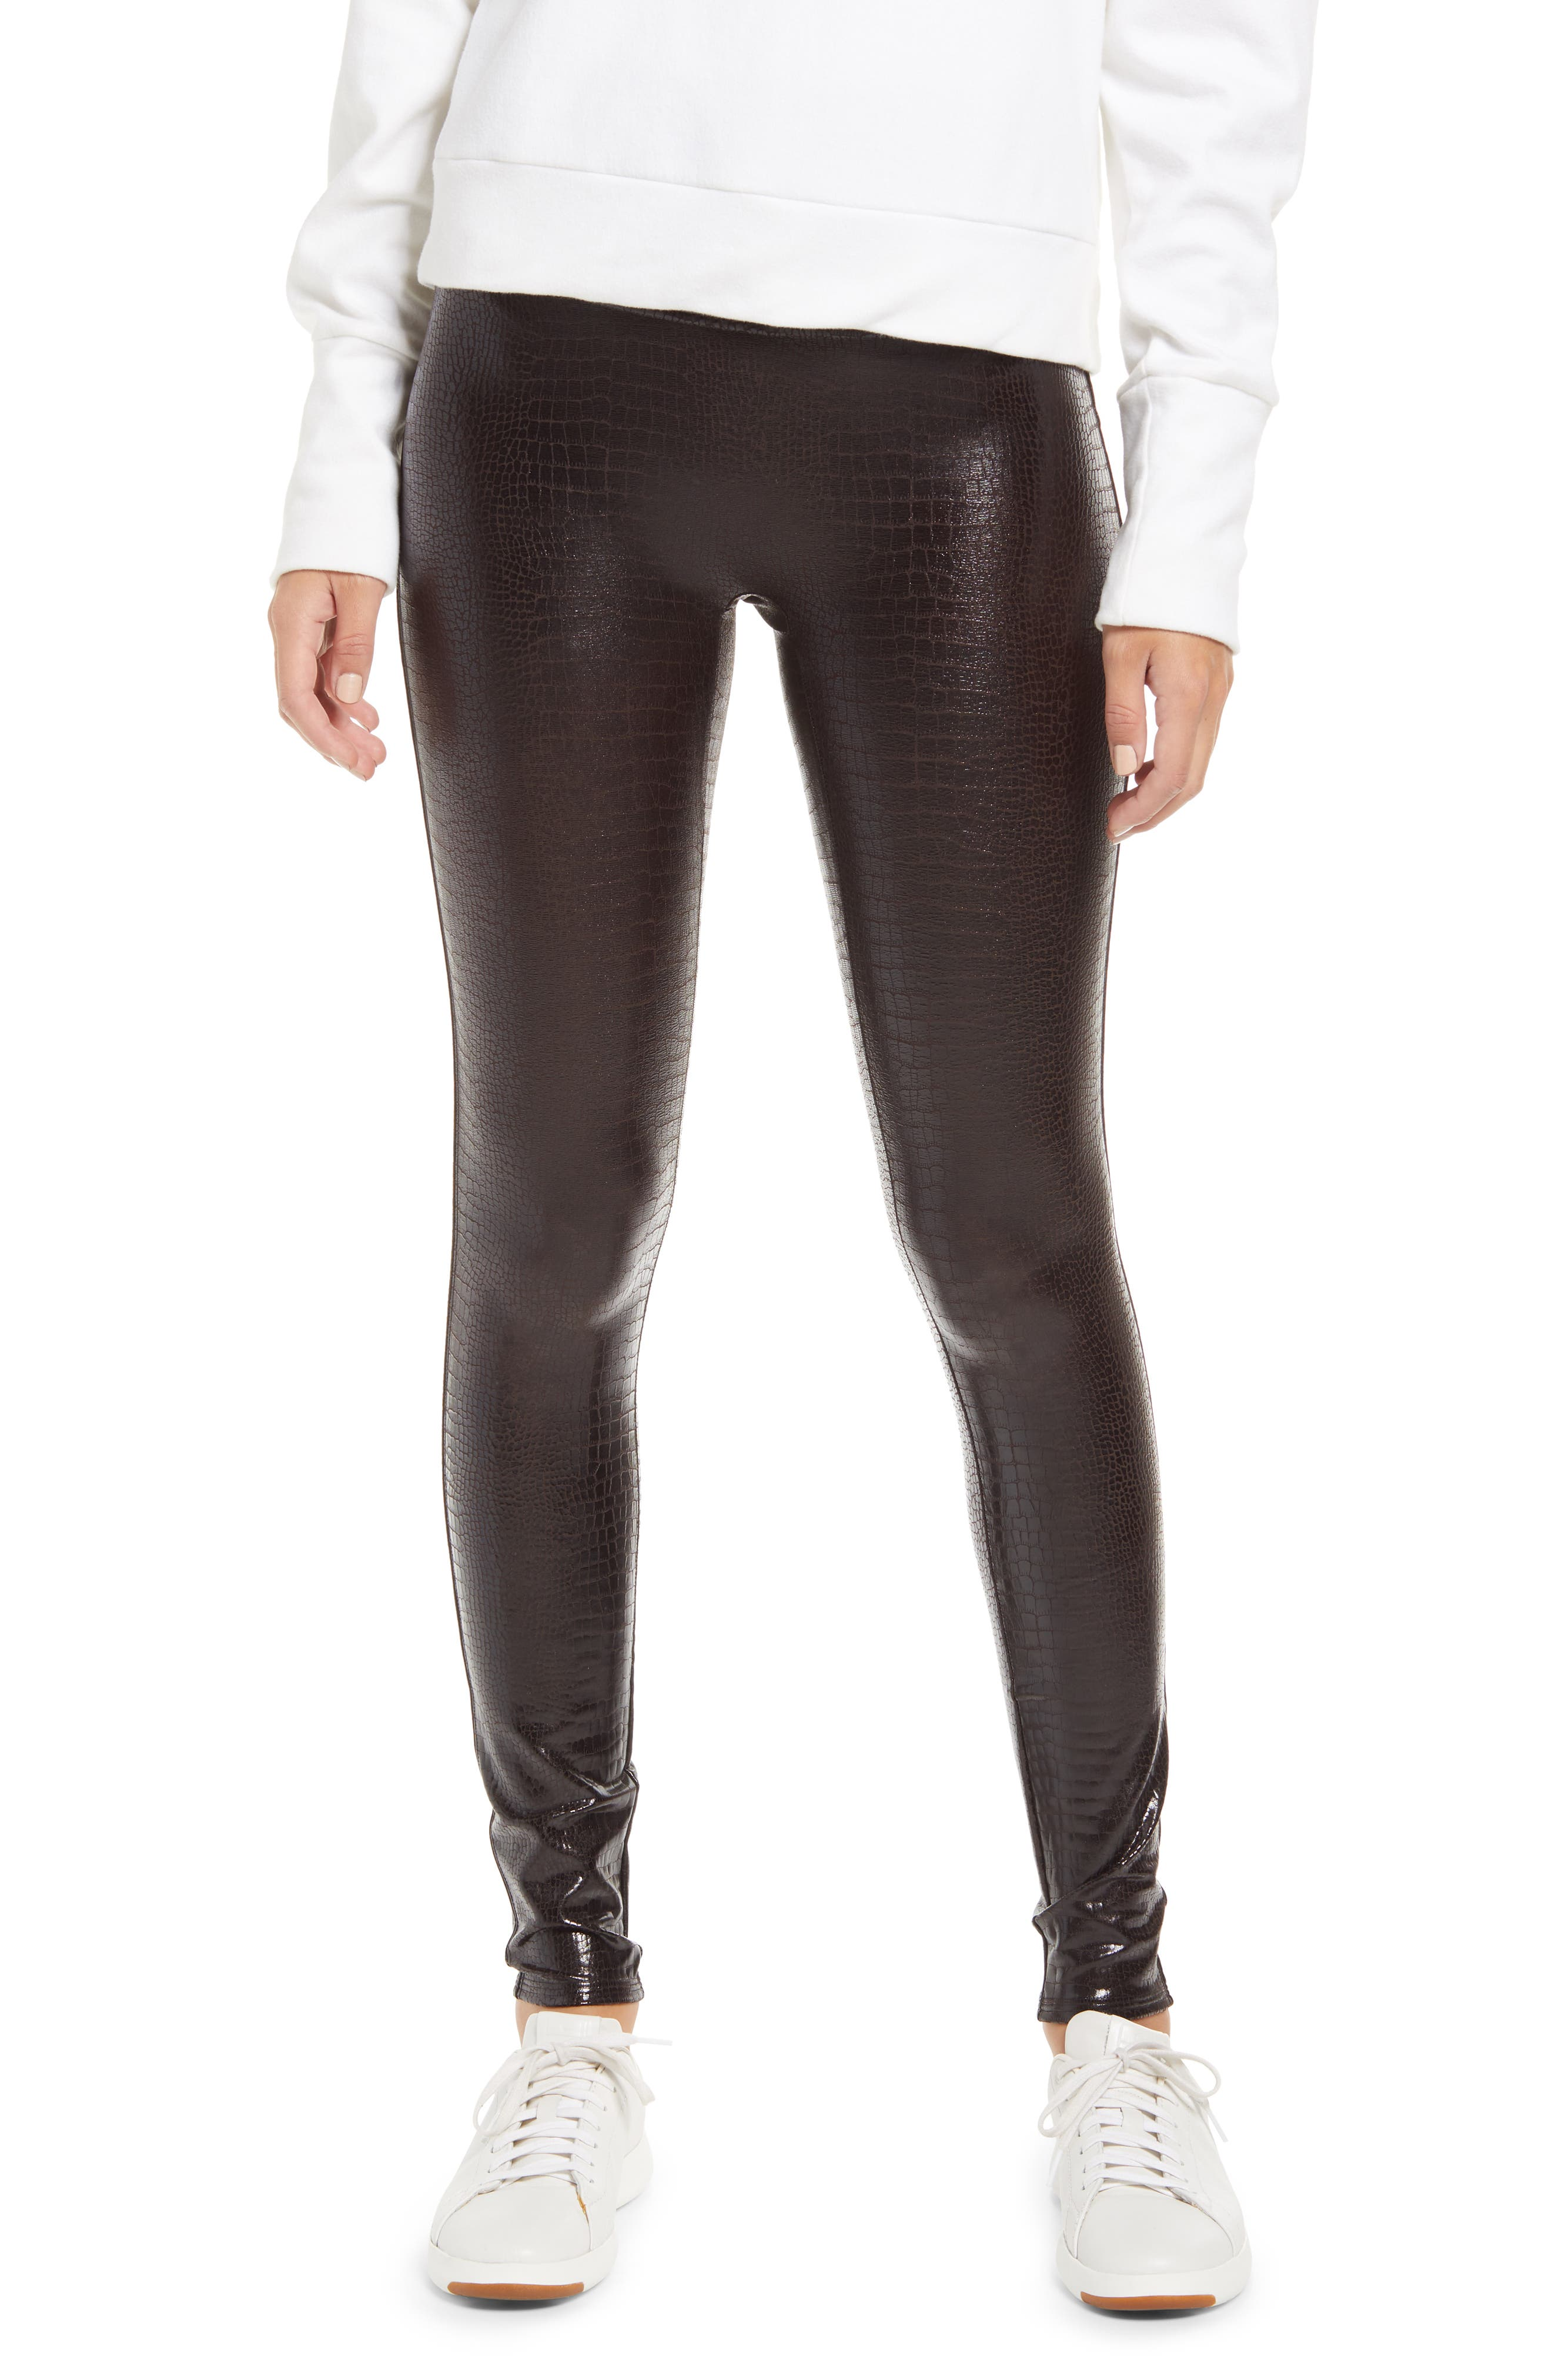 With chic croc texture and glossy shine, these lightly shaping faux-leather leggings make a sophisticated base for casual and elevated outfits alike. Style Name: Spanx Croc Embossed High Waist Faux Leather Leggings. Style Number: 6095589. Available in stores.